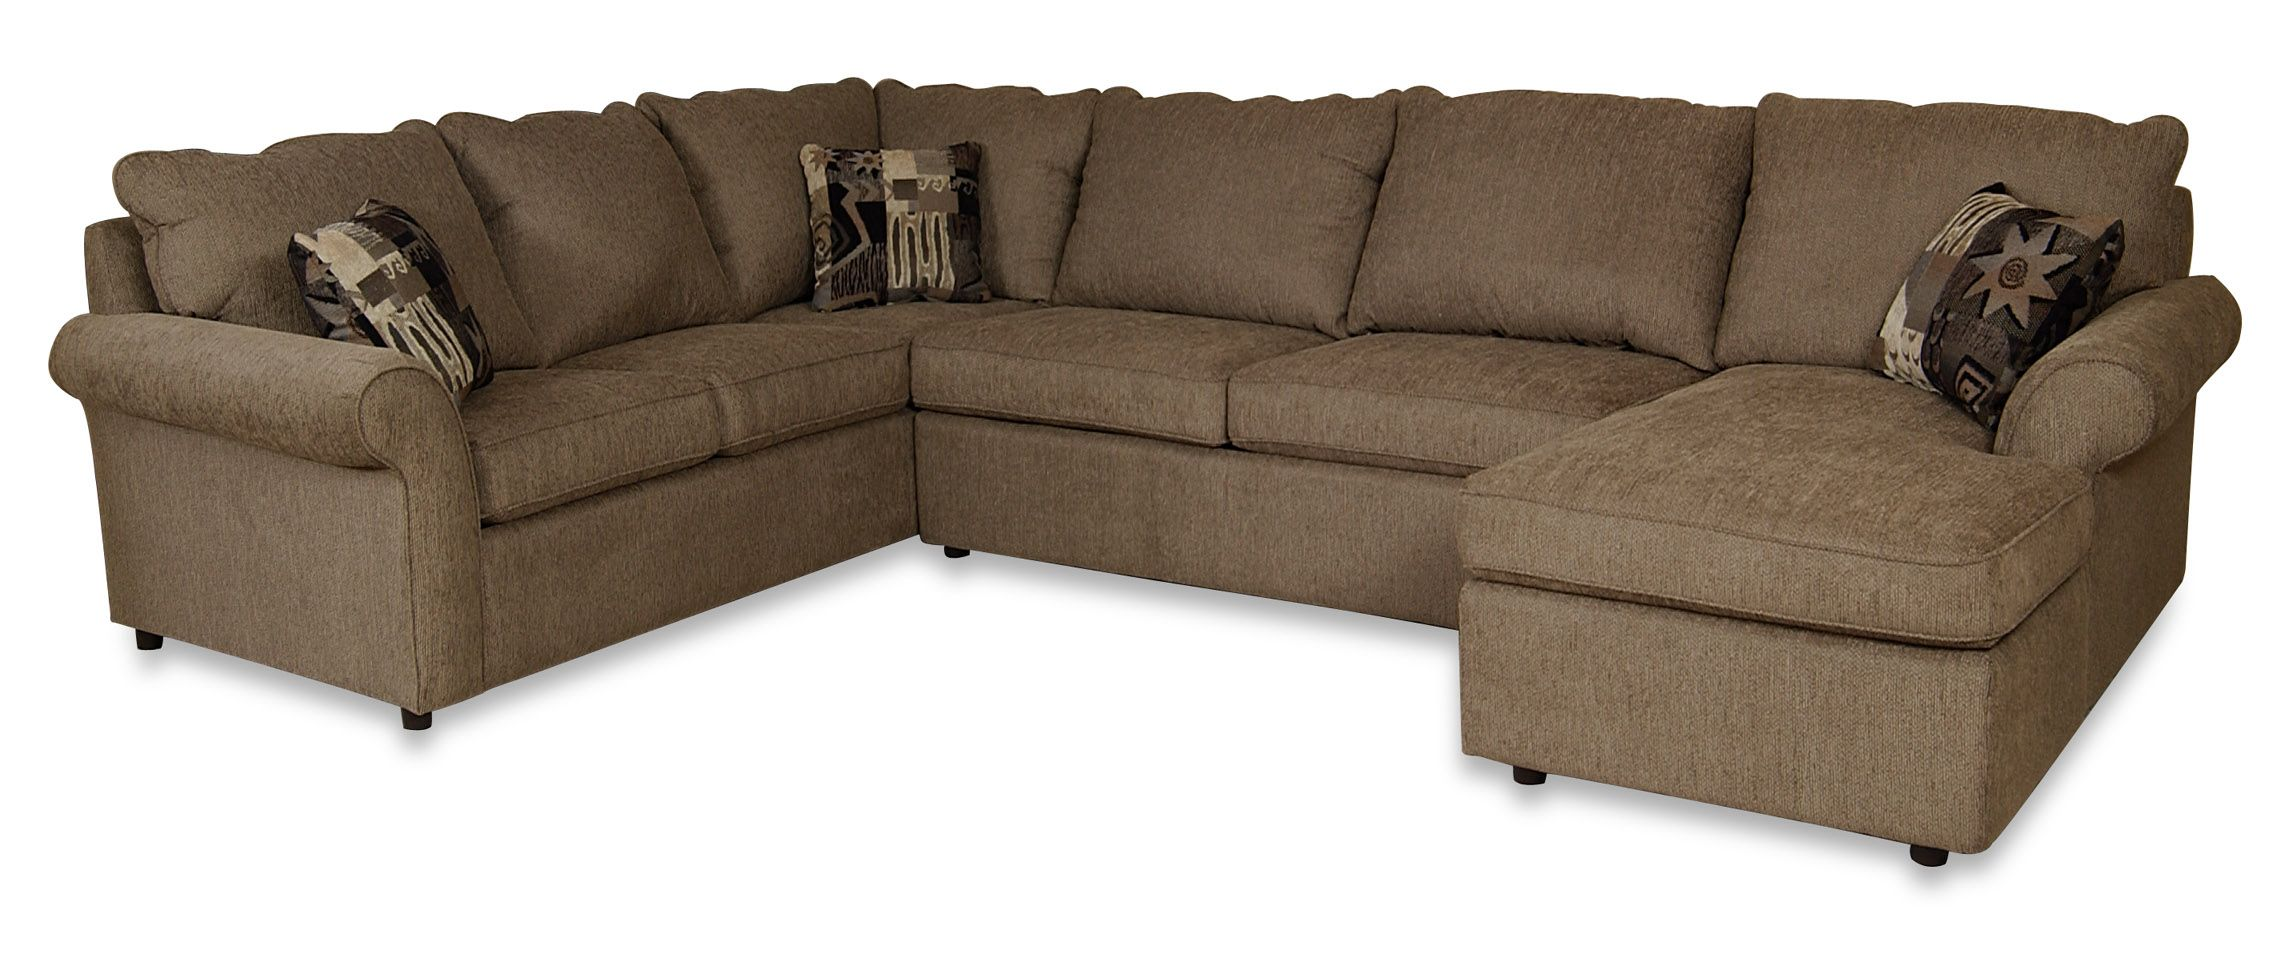 2400 Sect England Malibu Sectional Ernie s in Ceresco